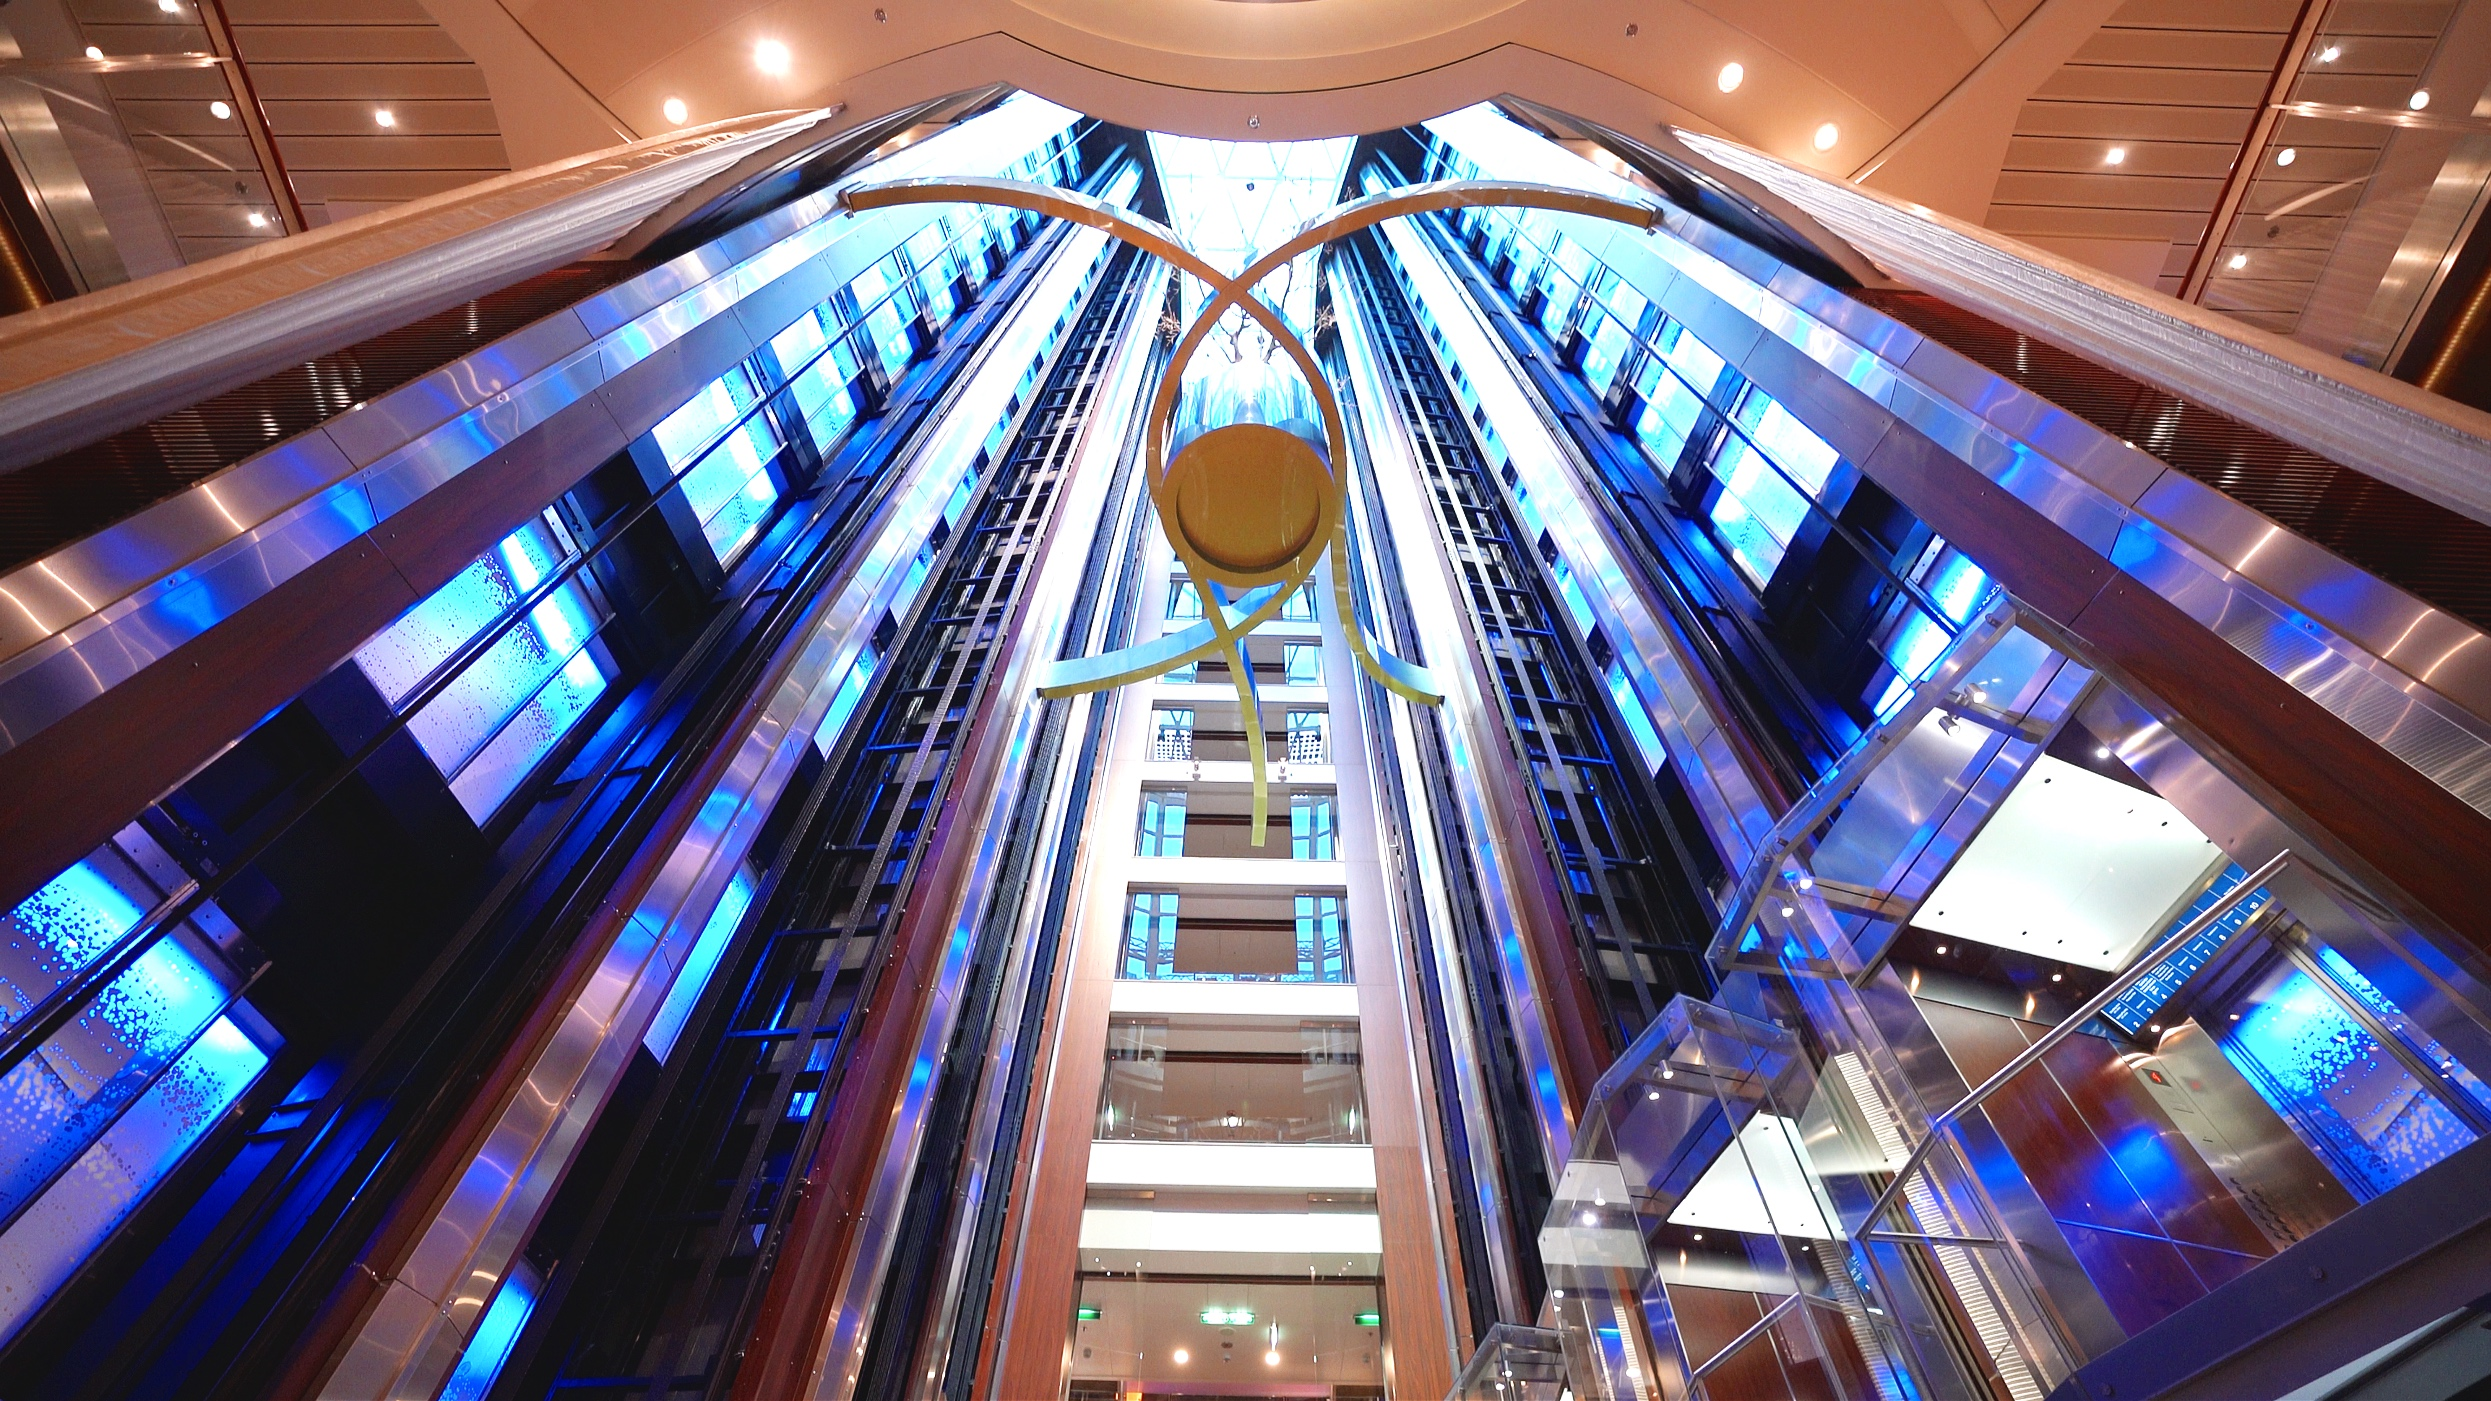 The glass lifts traverse the entire height of the atrium